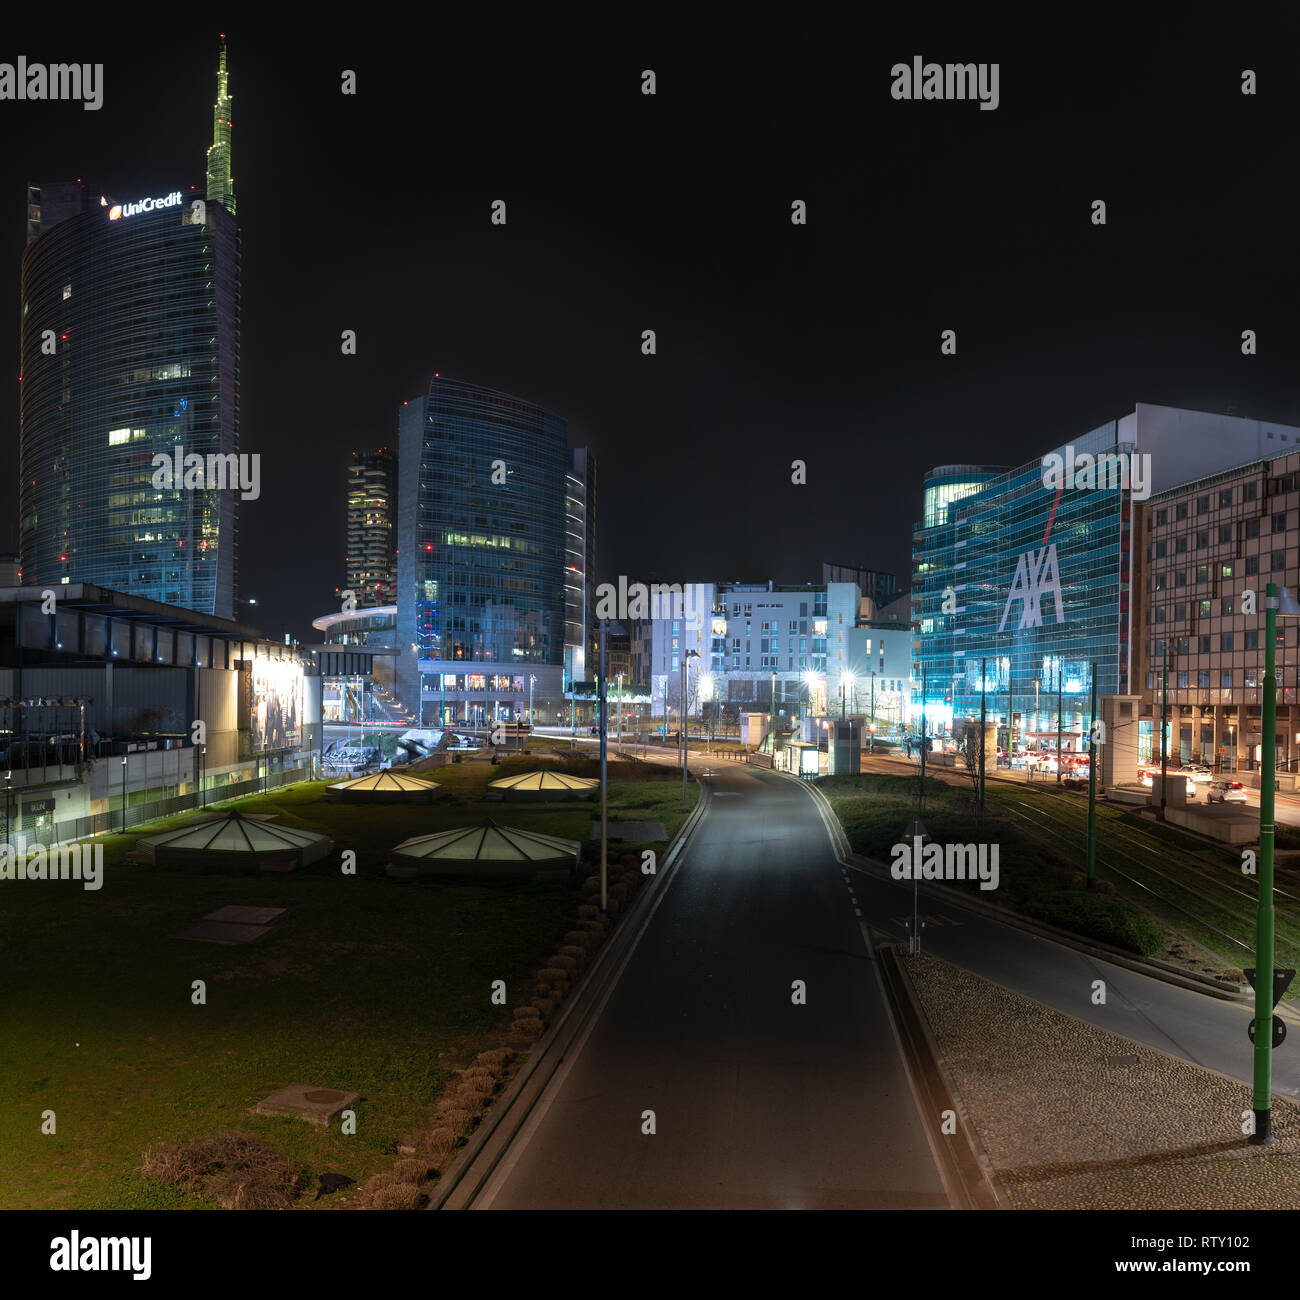 03/02/2019 Mialn, Italy: Unicredit tower, Gae Aulenti square, financial district of milan seen from the overpass Bussa.  nocturnal scene Stock Photo